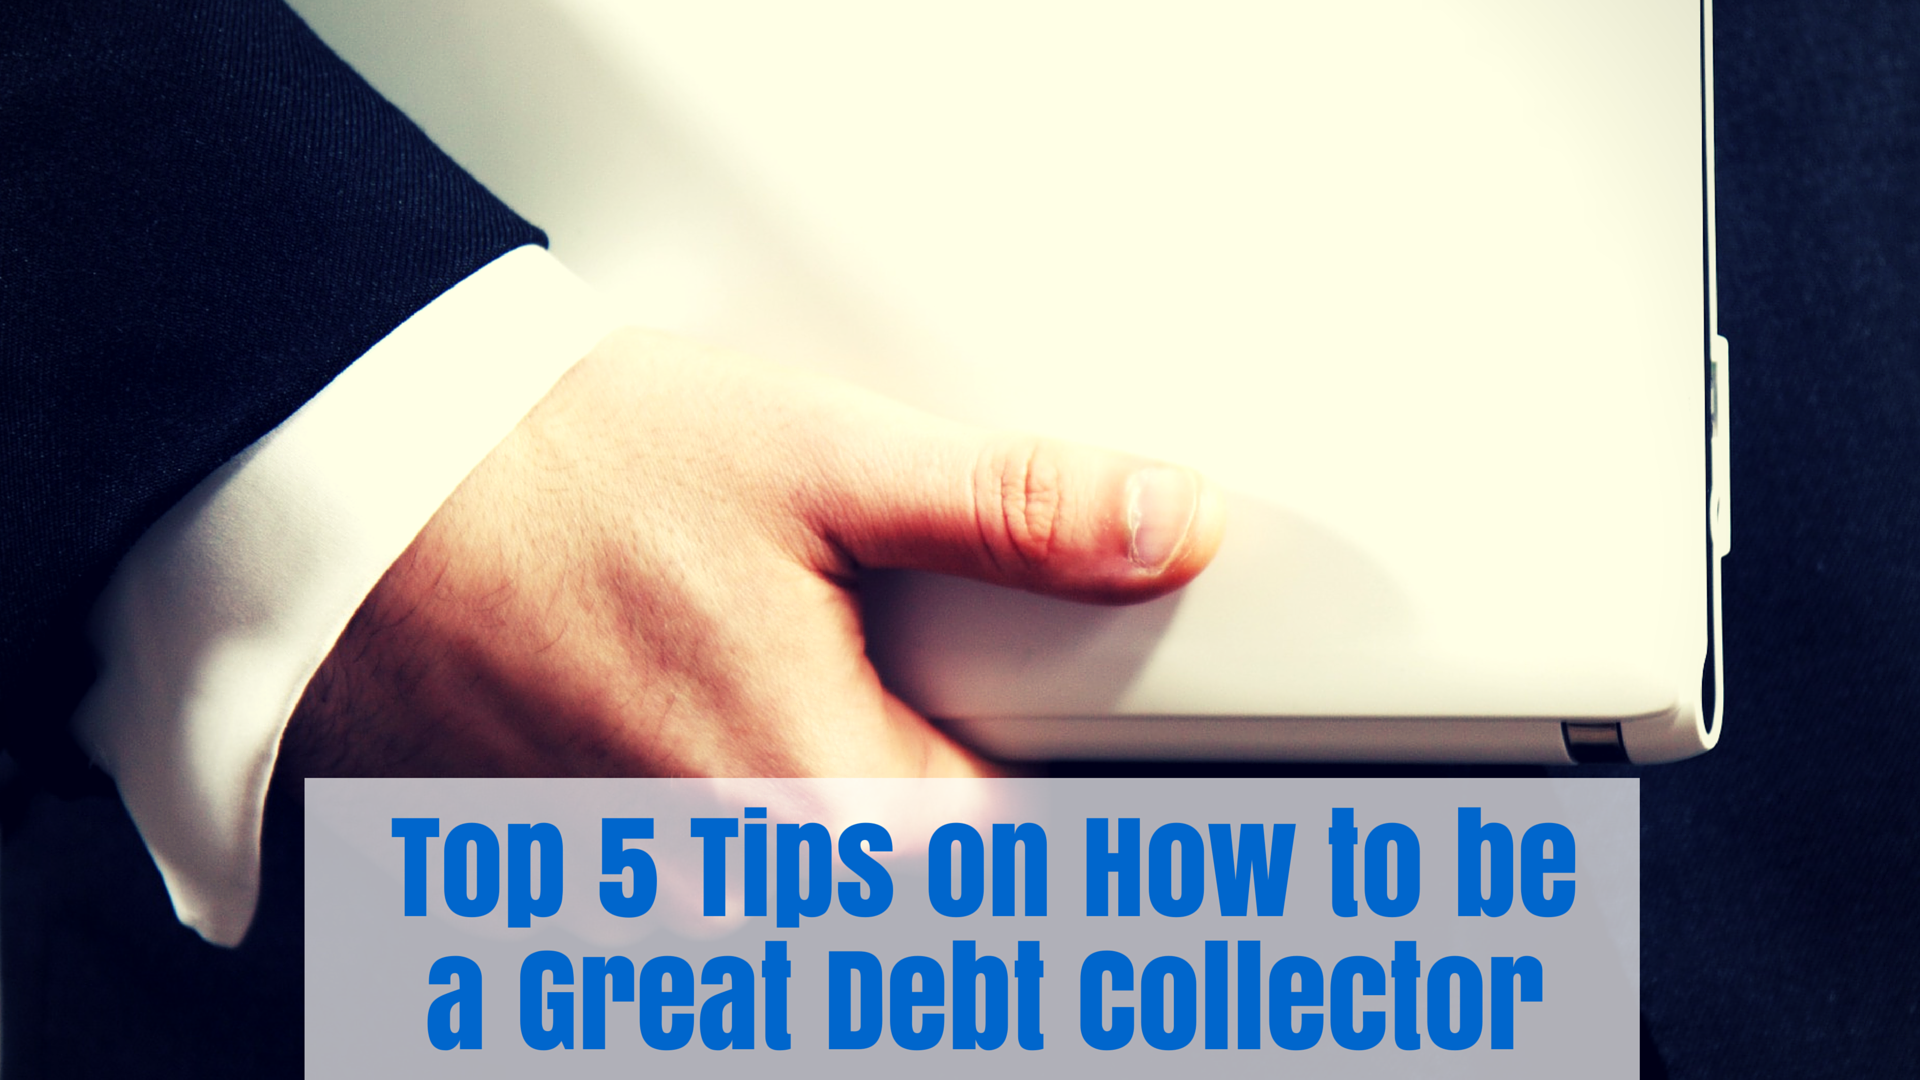 Top 5 Tips on How to be a Great Debt Collector